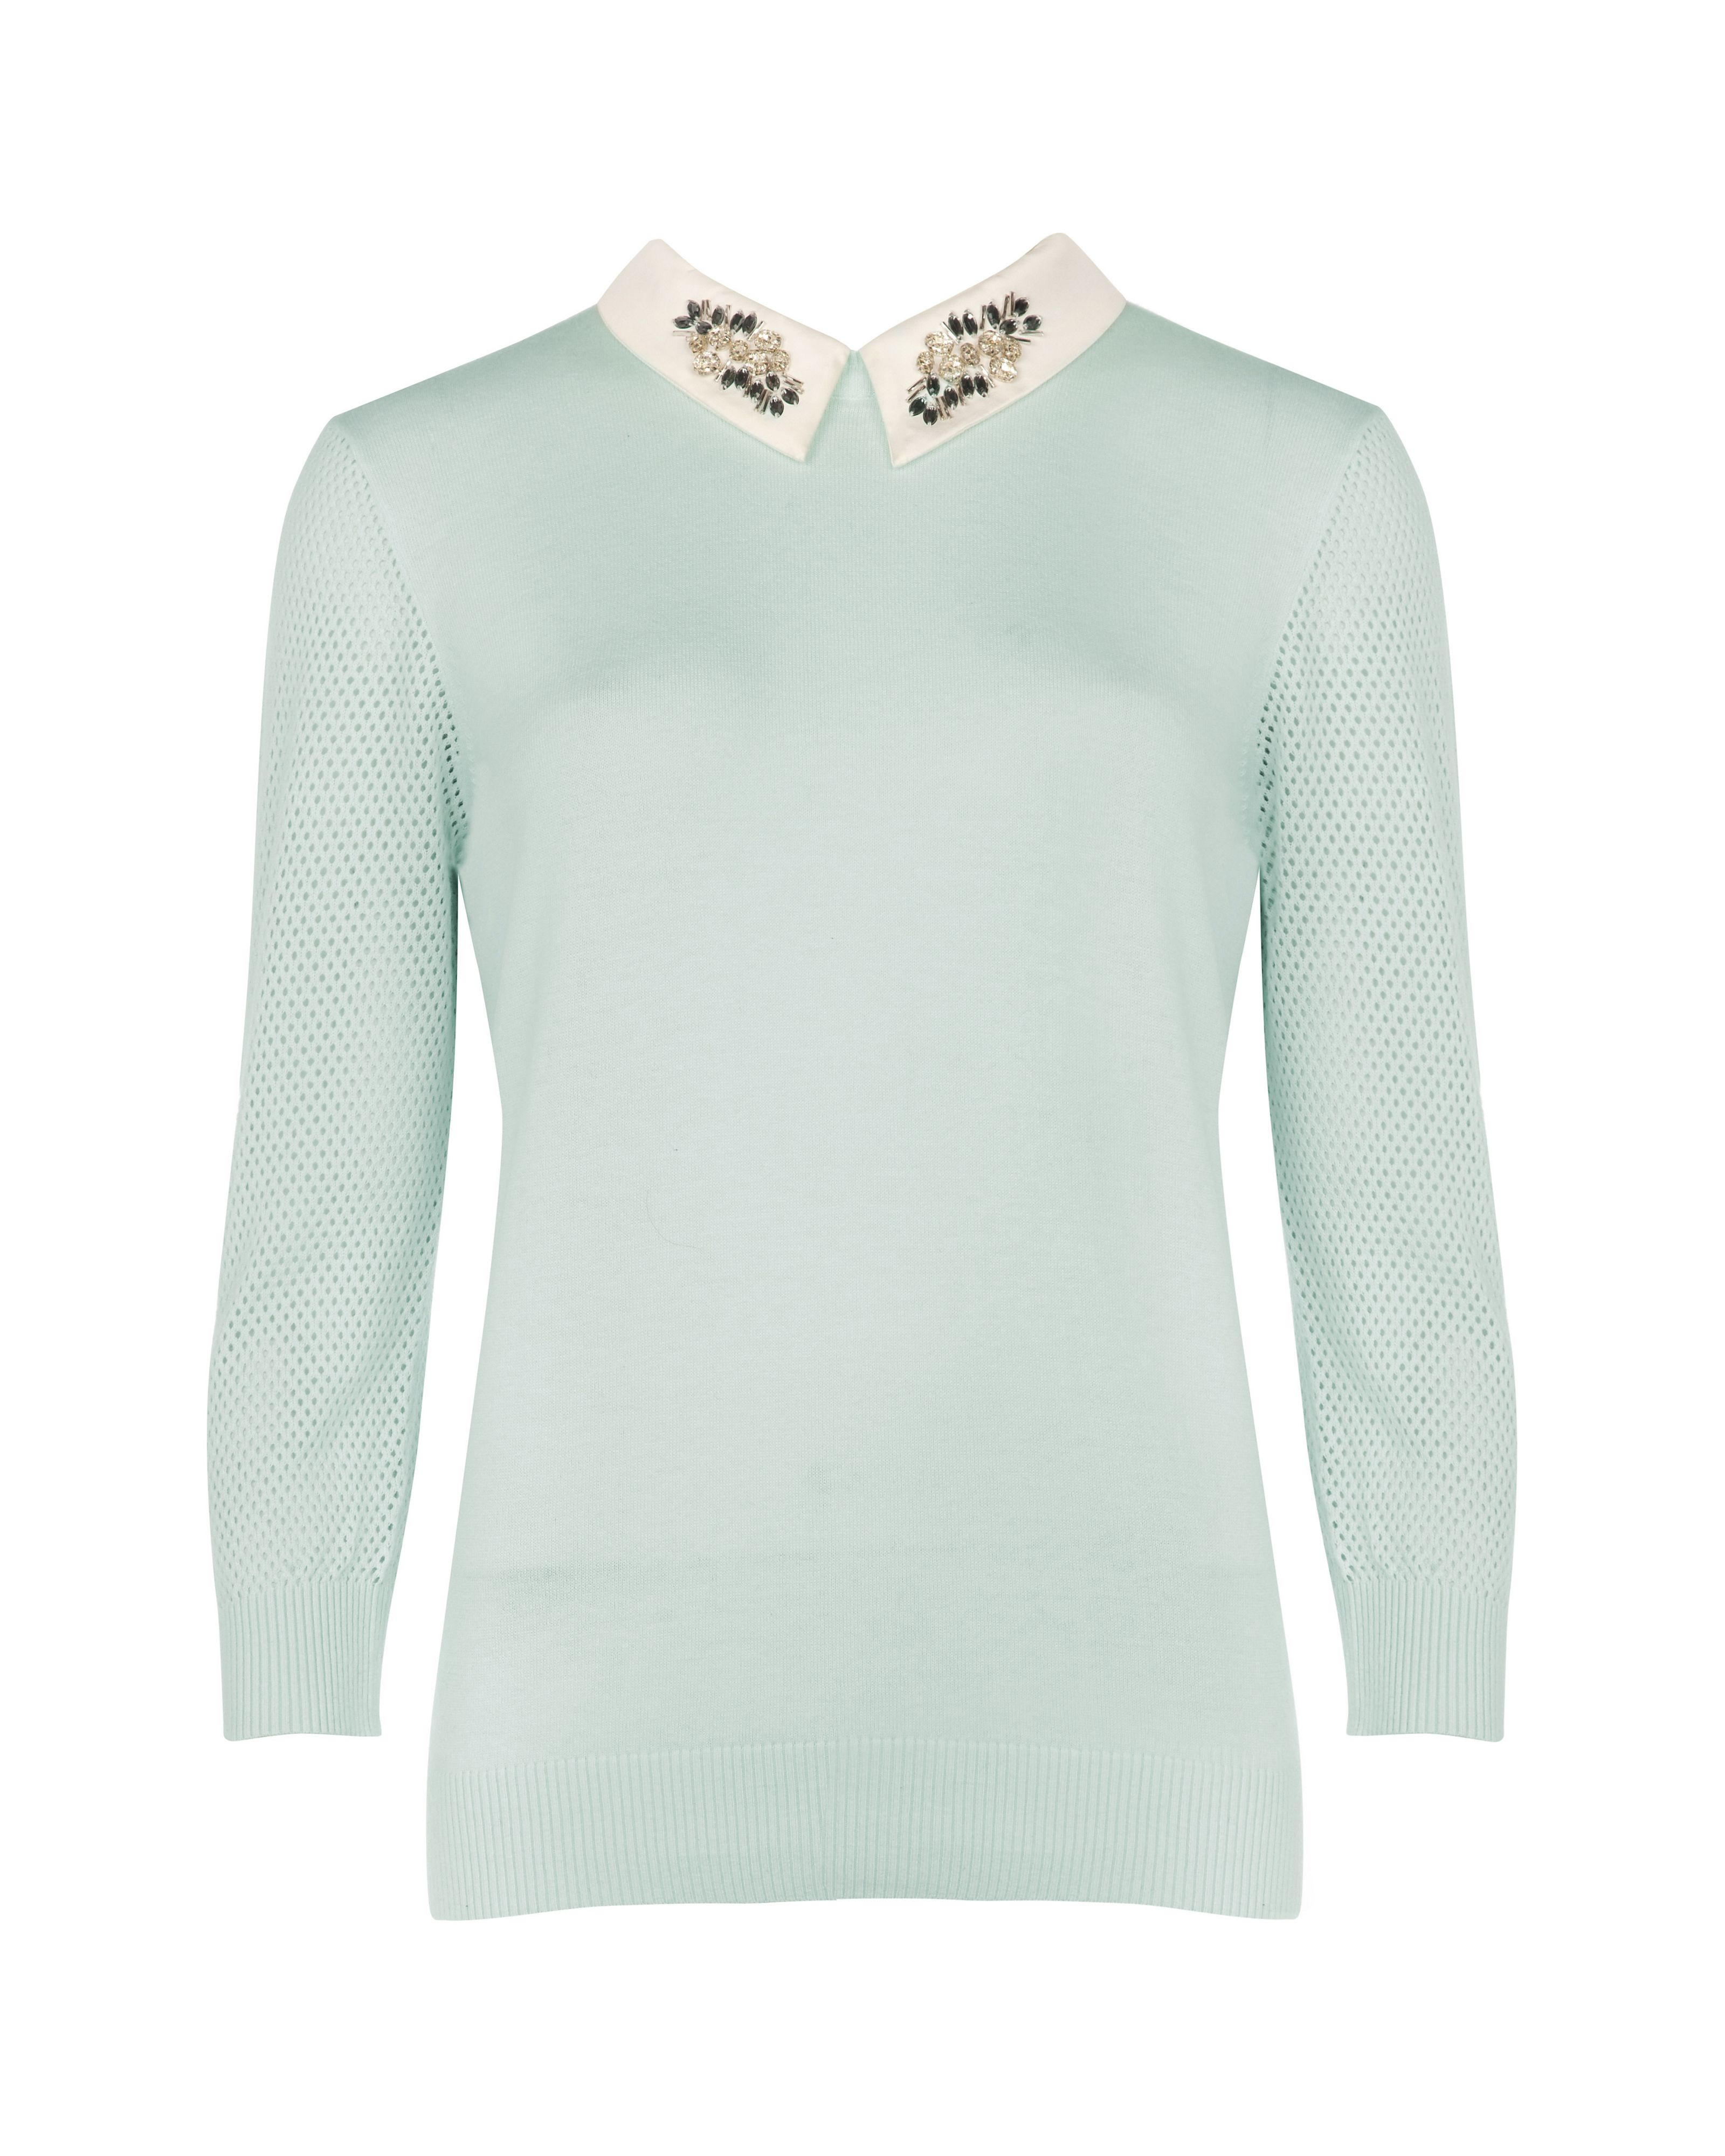 Helane embellished collar sweater